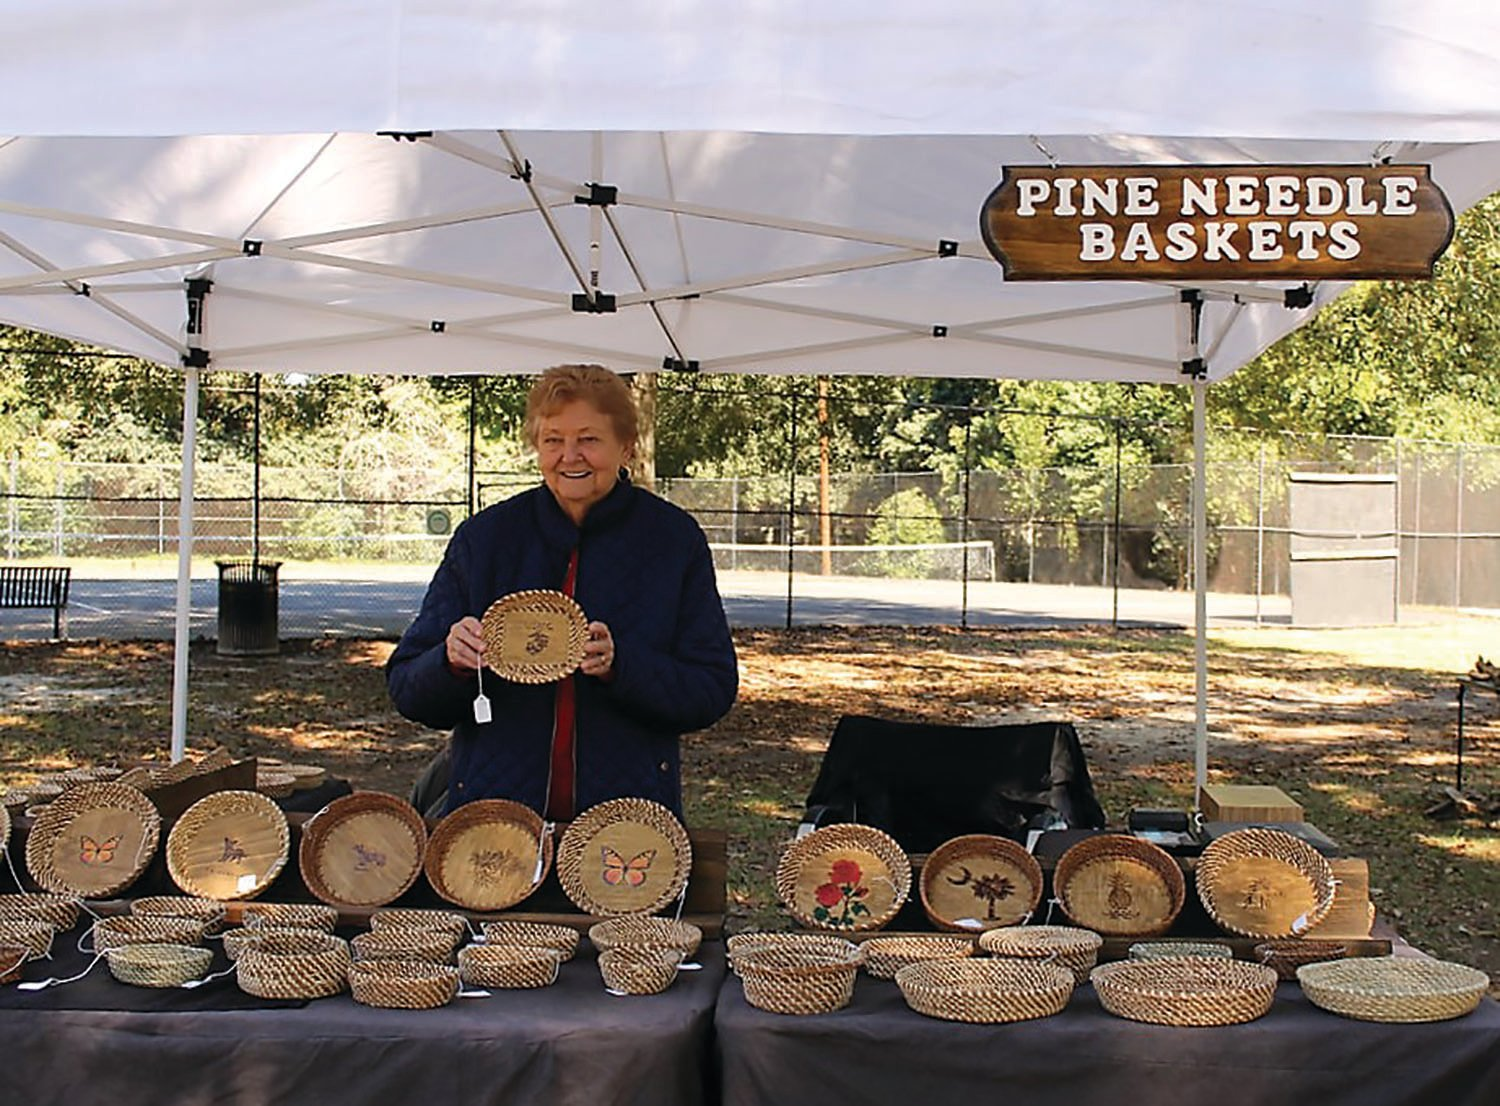 PHOTOS PROVIDED  Penelope Carter, a perennial participant in Art in the Park, will be back with her handwoven pine needle baskets. The outdoor festival and art exhibition will be presented Sept. 19 at Memorial Park. Admission is free.